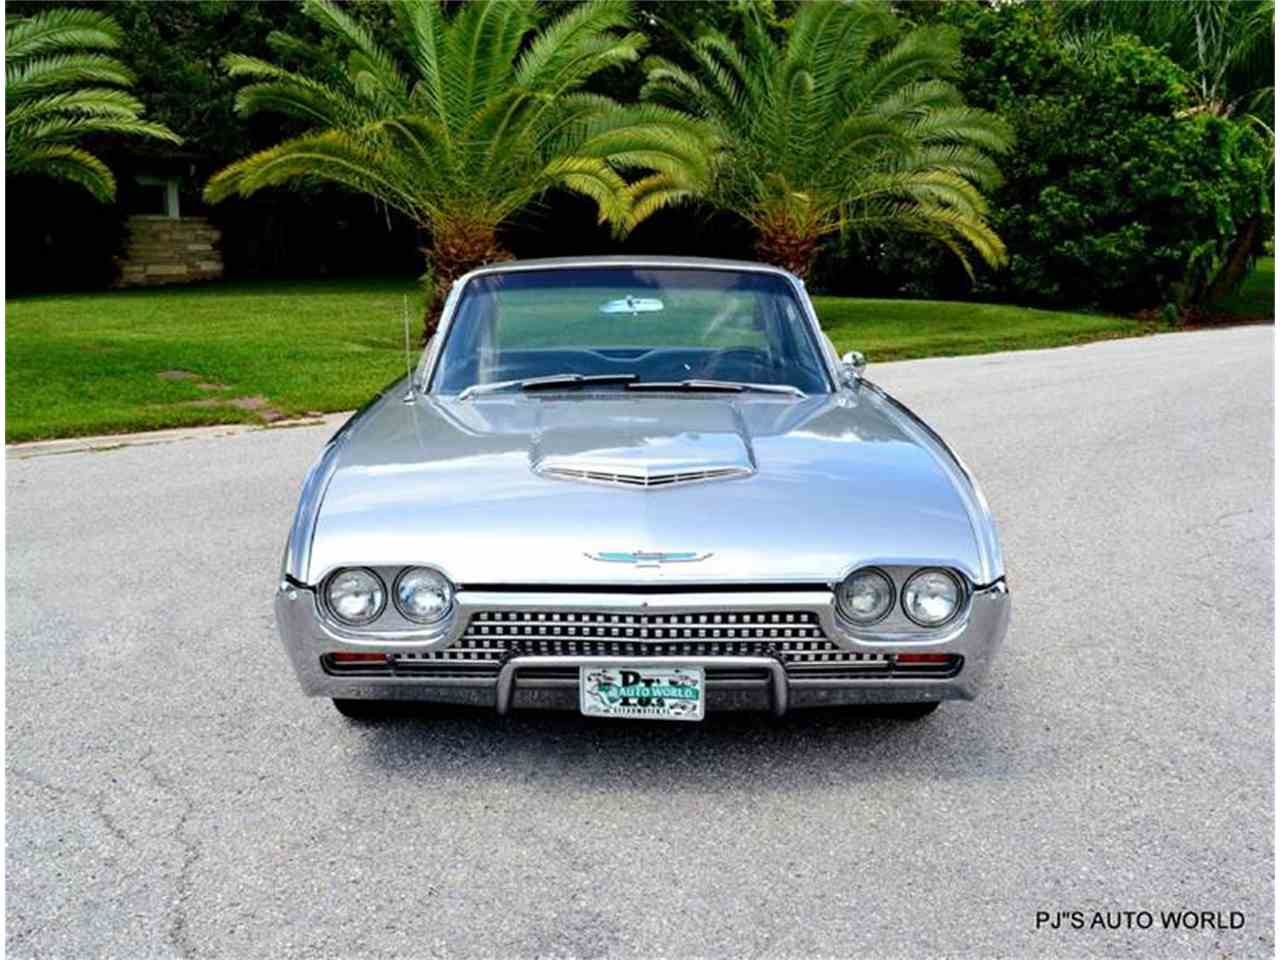 Large Picture of '62 Ford Thunderbird Offered by PJ's Auto World - J087